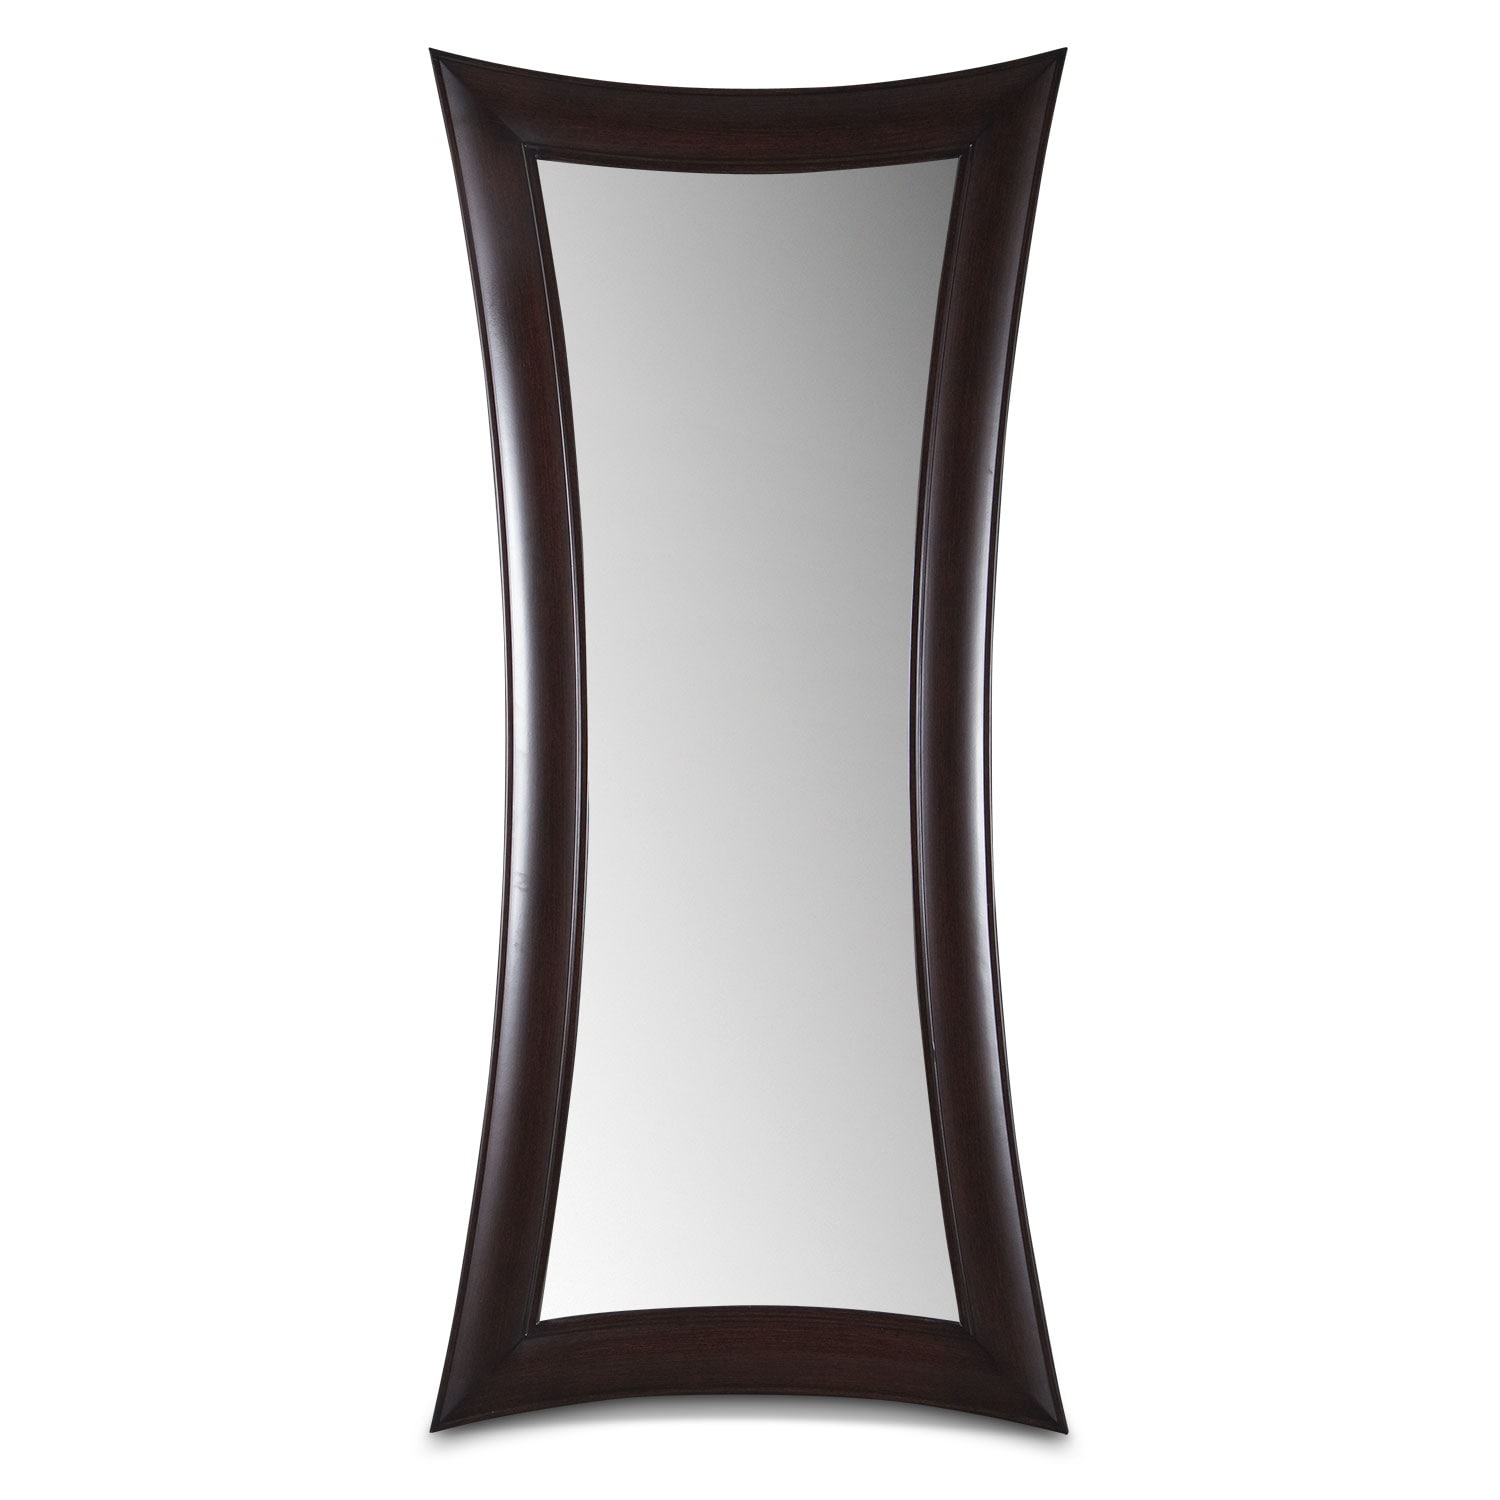 Abigail wenge floor mirror american signature furniture for Miroir wenge